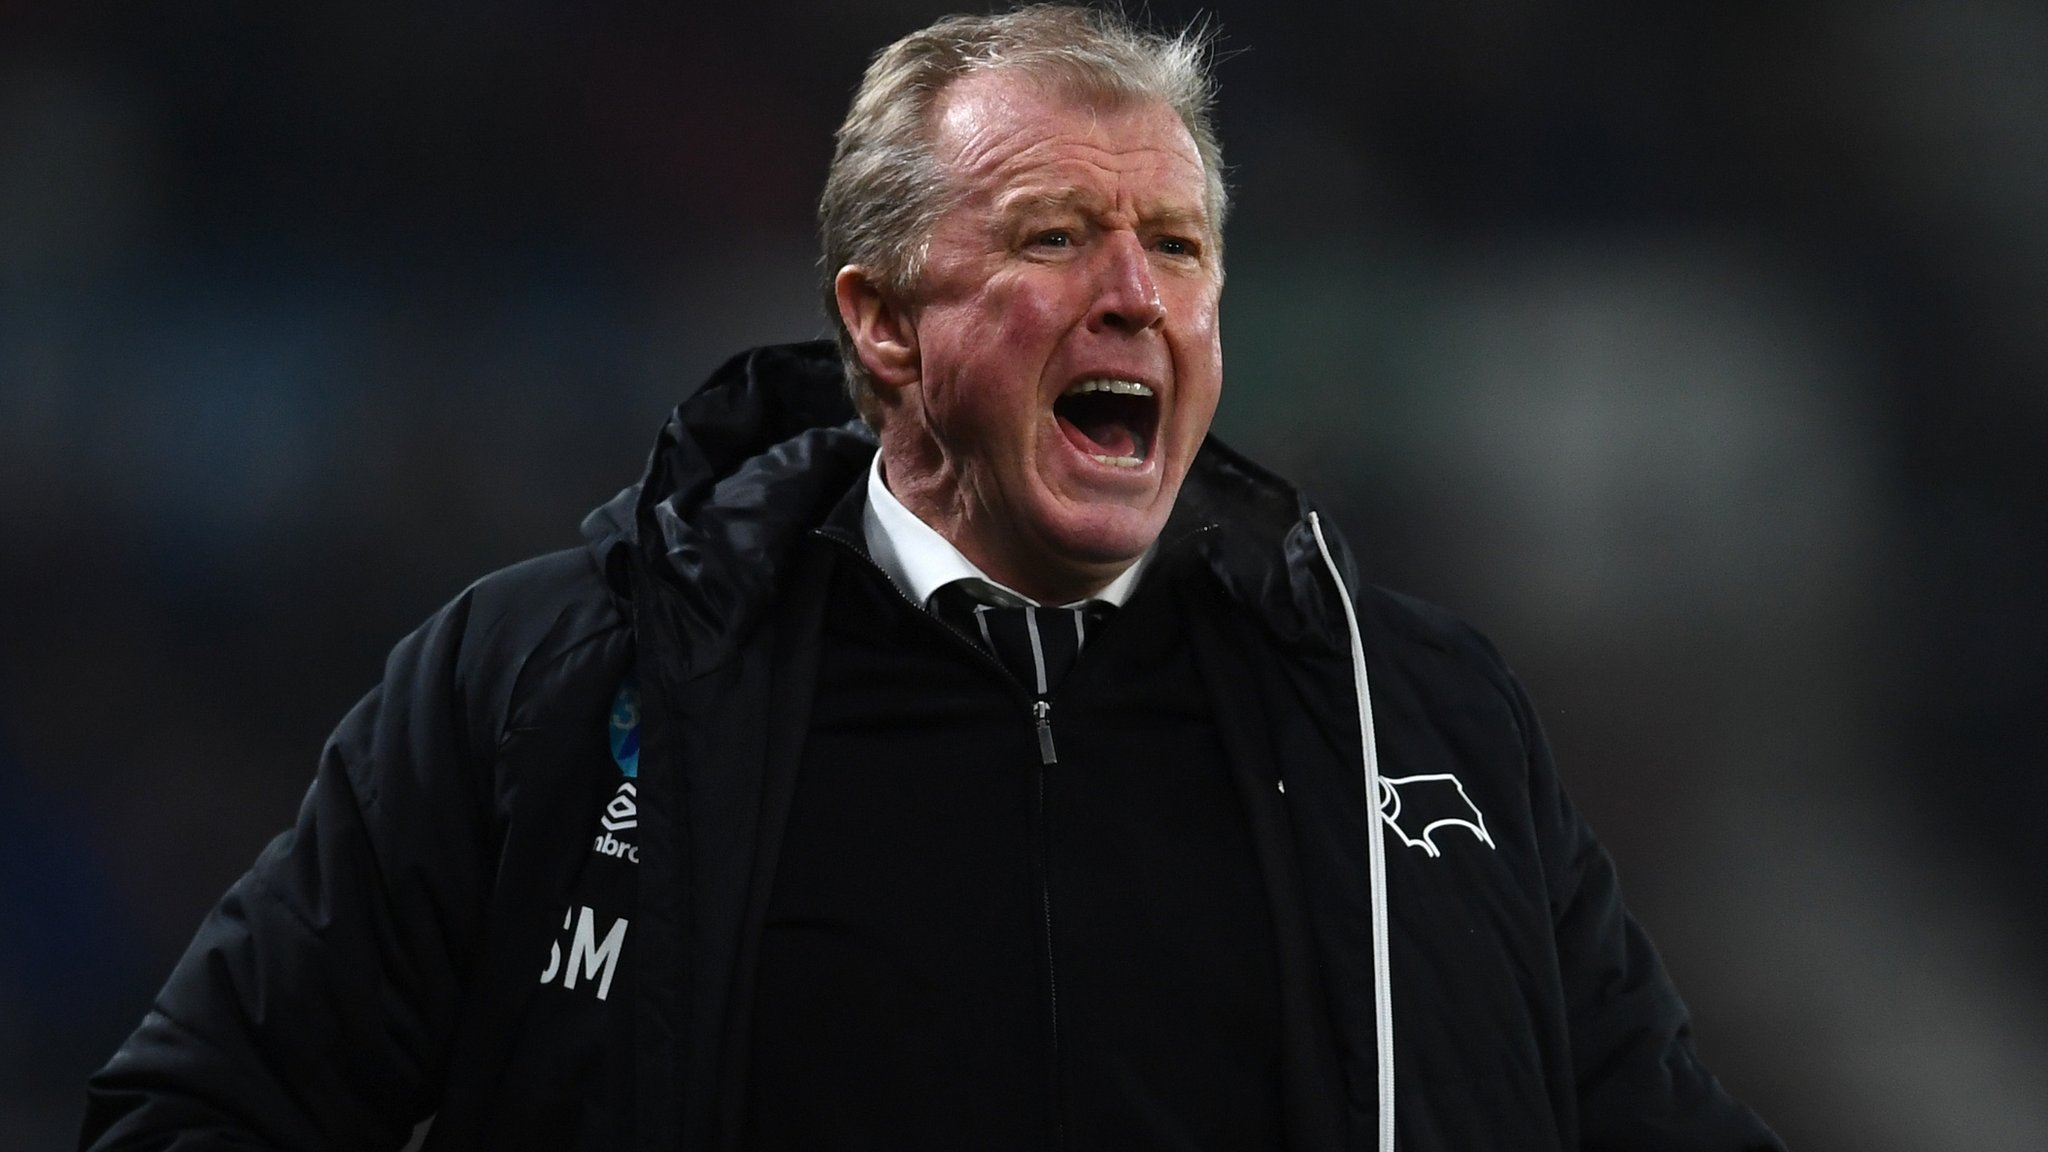 Hearts: Steve McClaren out of the running to succeed Ian Cathro